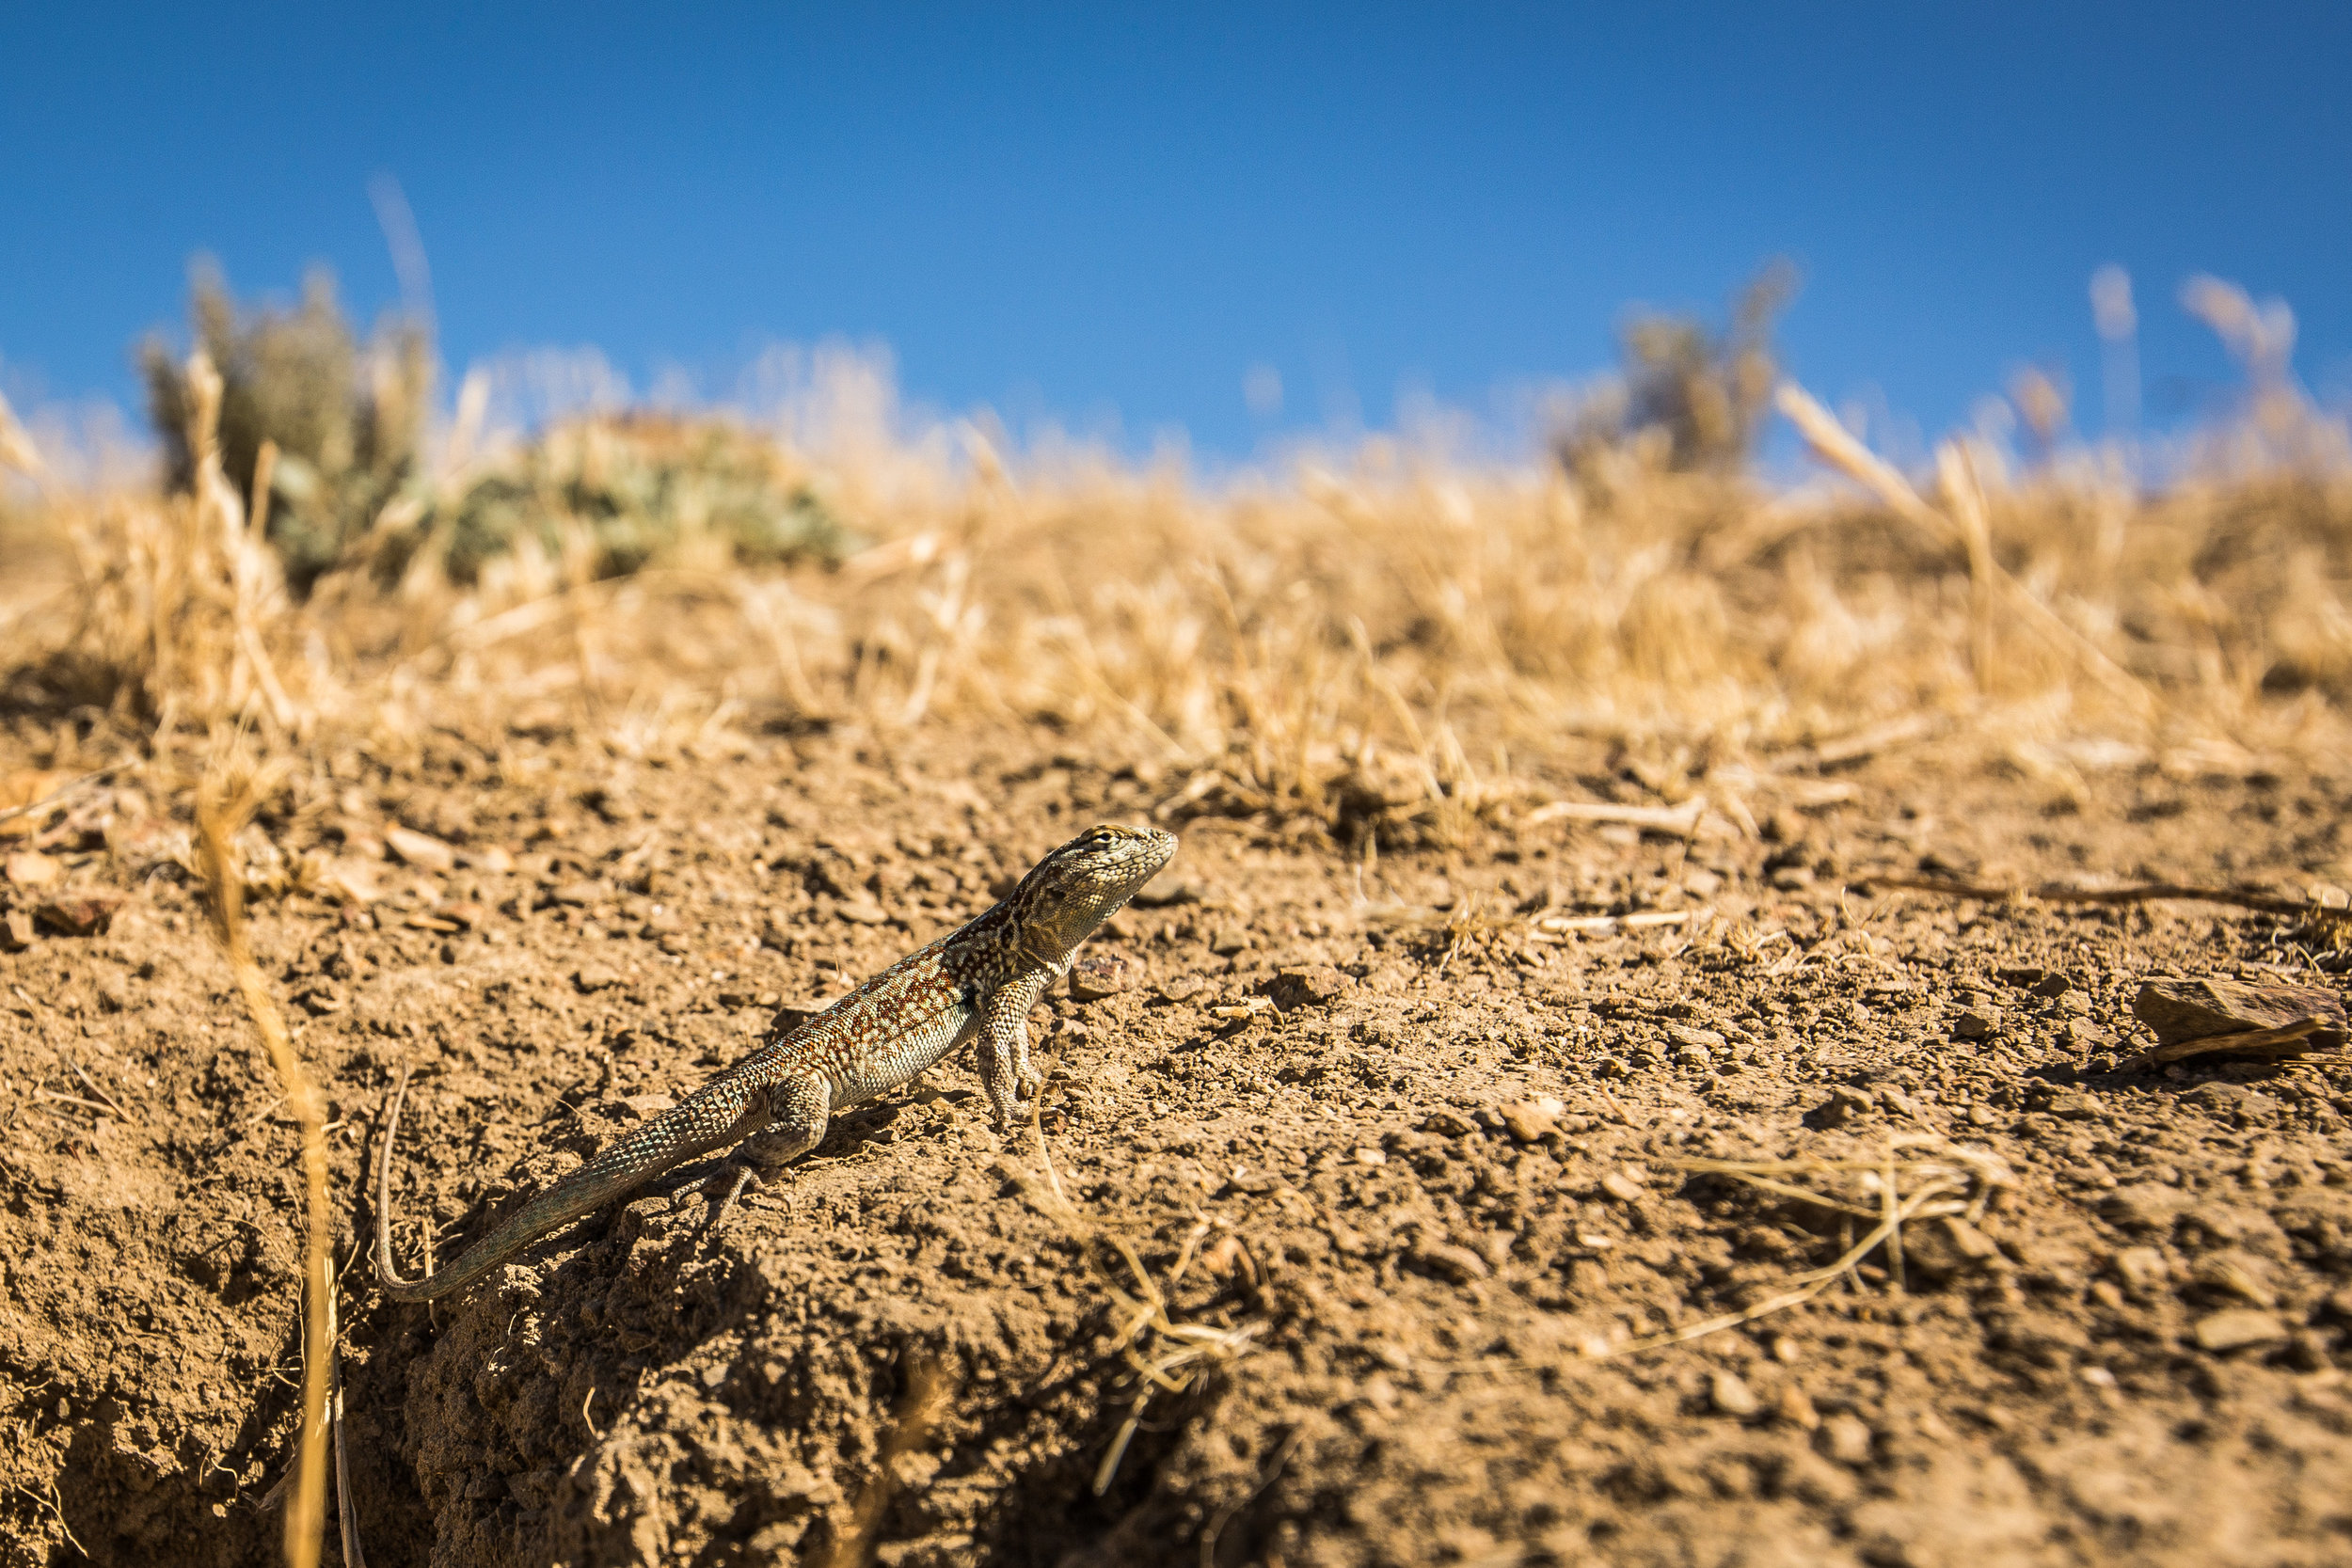 side-blotched lizard (Uta stansburiana) - A common side-blotched lizard, greeting us along one of the few short hiking trails within Carrizo Plain National Monument.